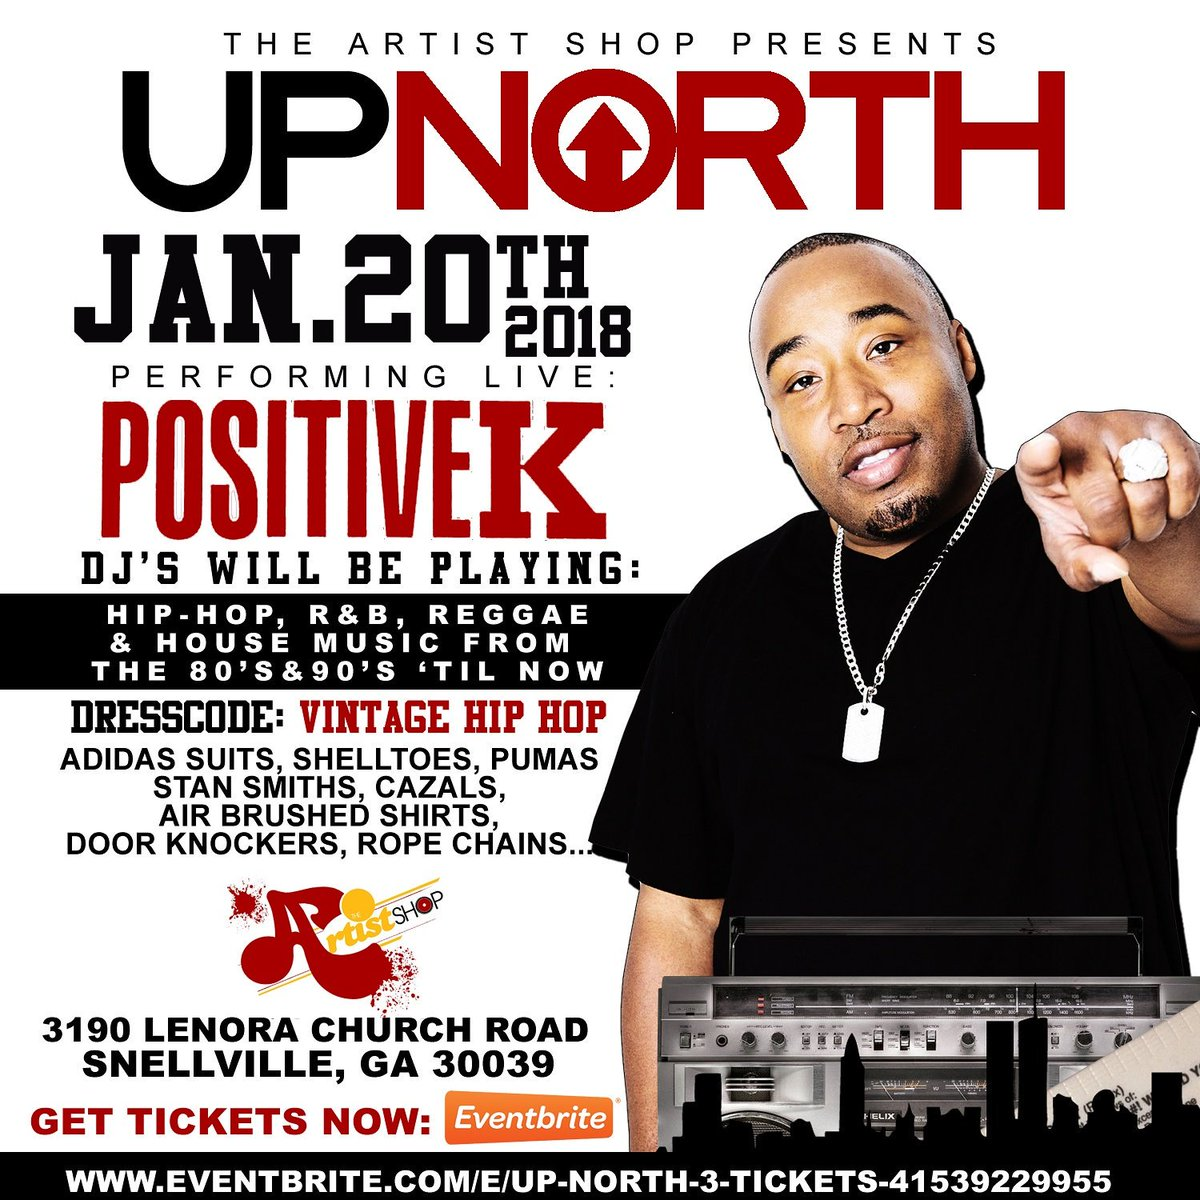 Positive K On Twitter Hey Come Watch Me Perform A Few Of My